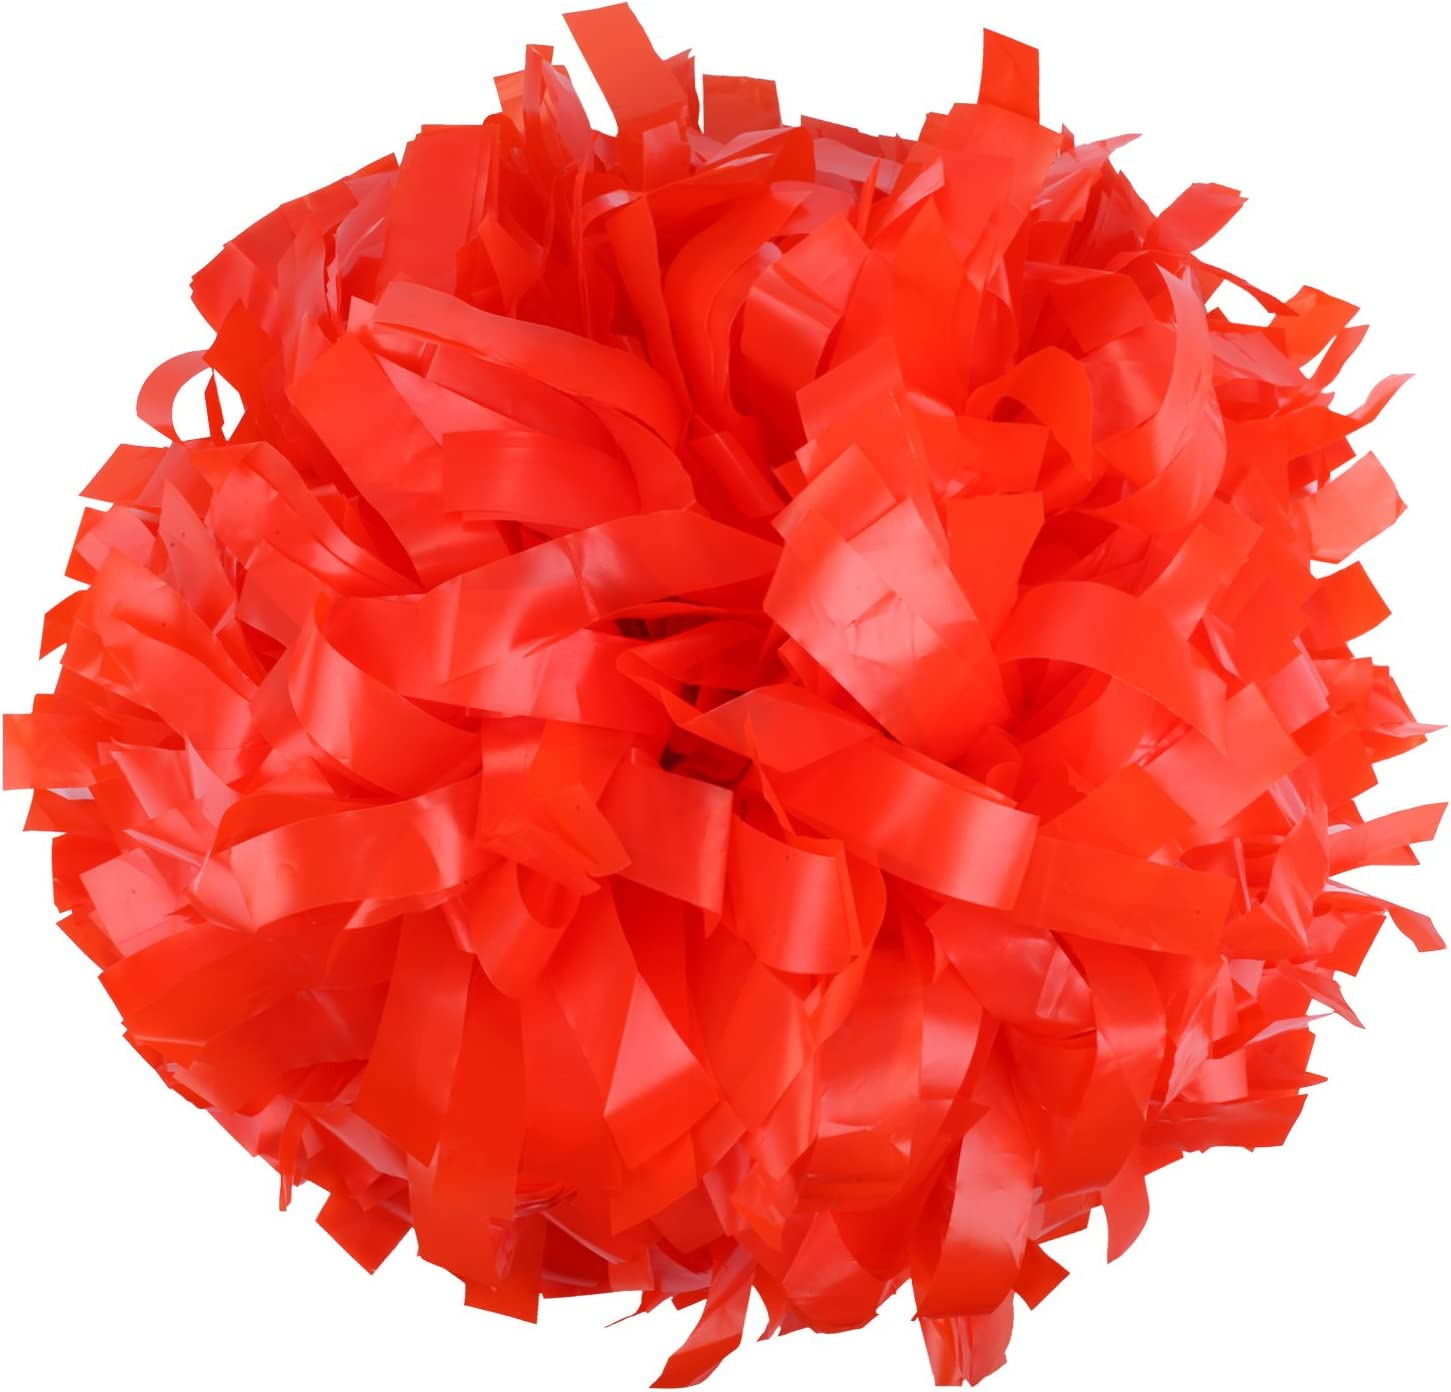 ICObuty Plastic Cheerleader Cheerleading Pom 1 inch Pair Popular brand in the world Poms Cheap mail order specialty store 6